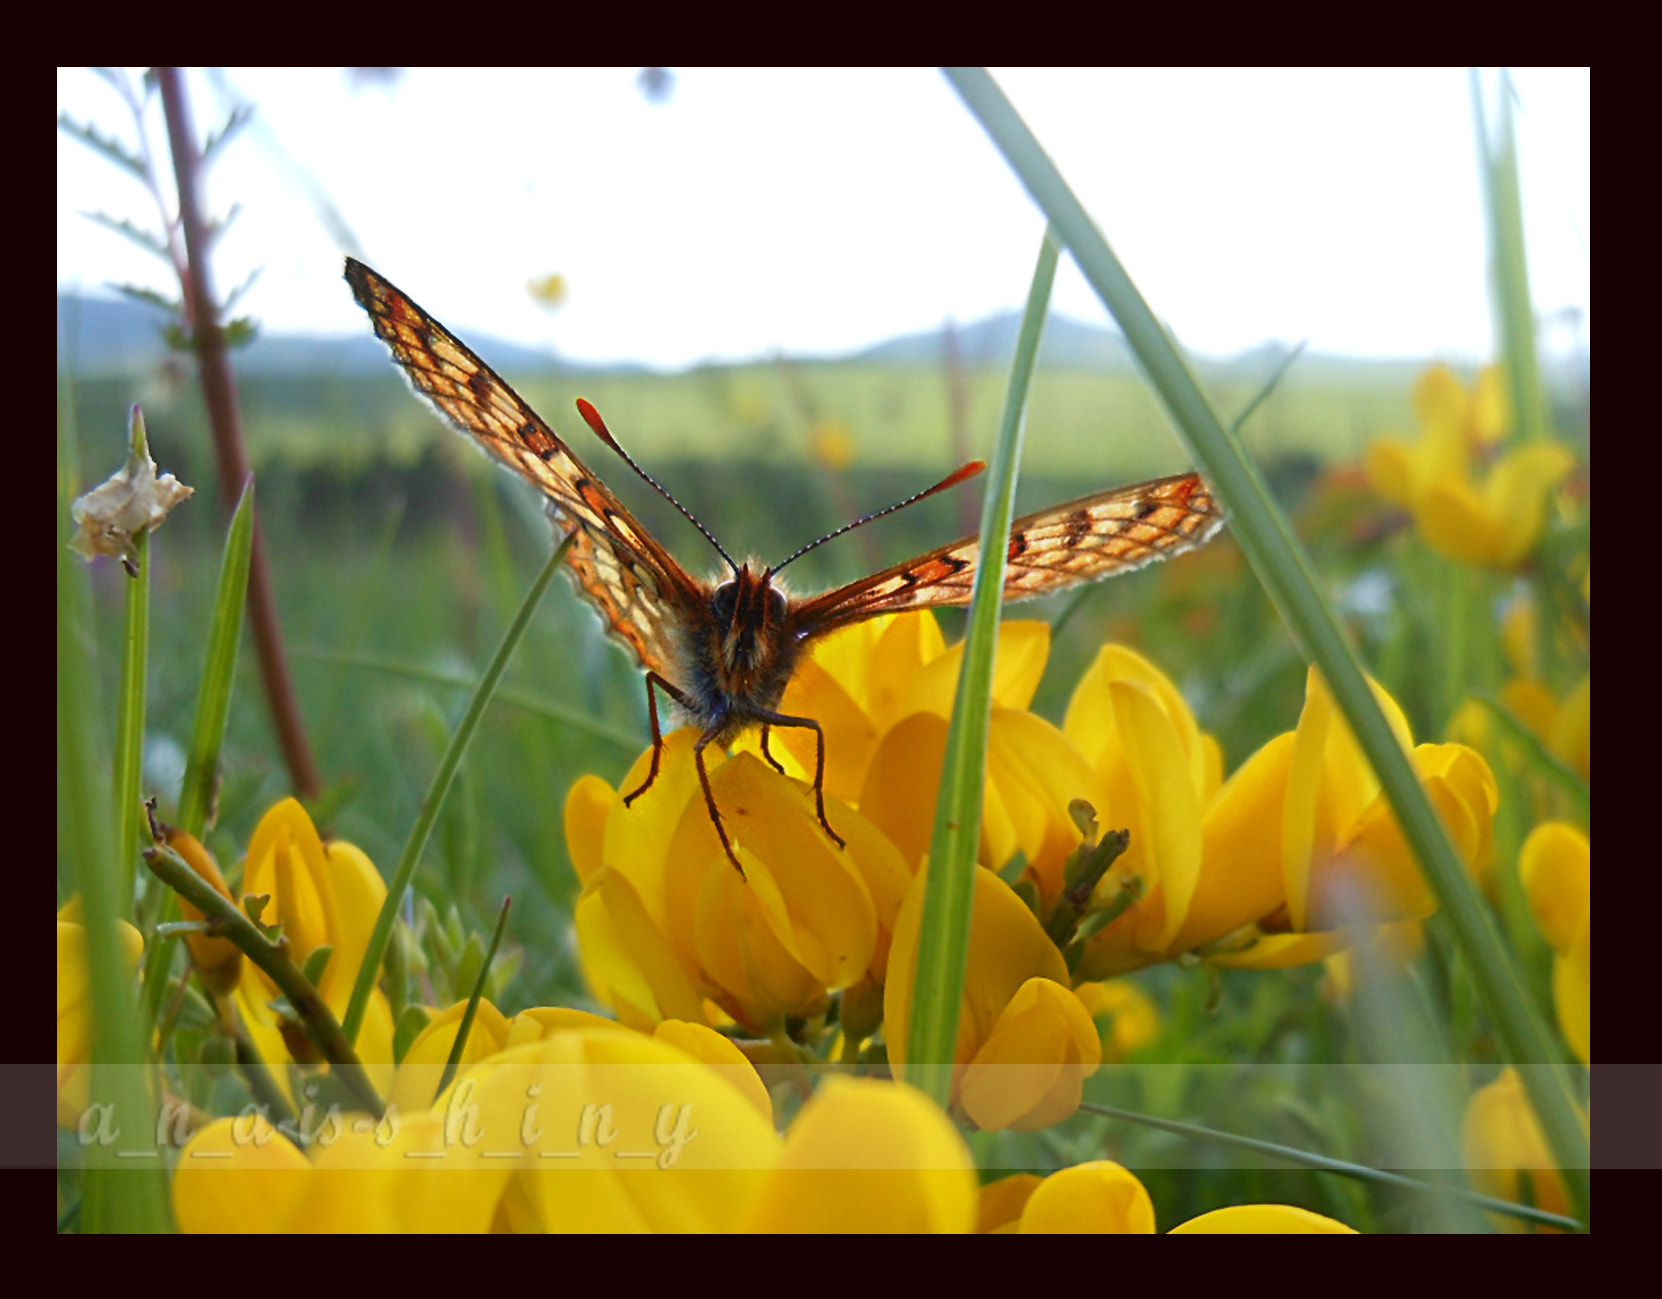 Photograph >>>in the grass<<< by Ana Mitić on 500px